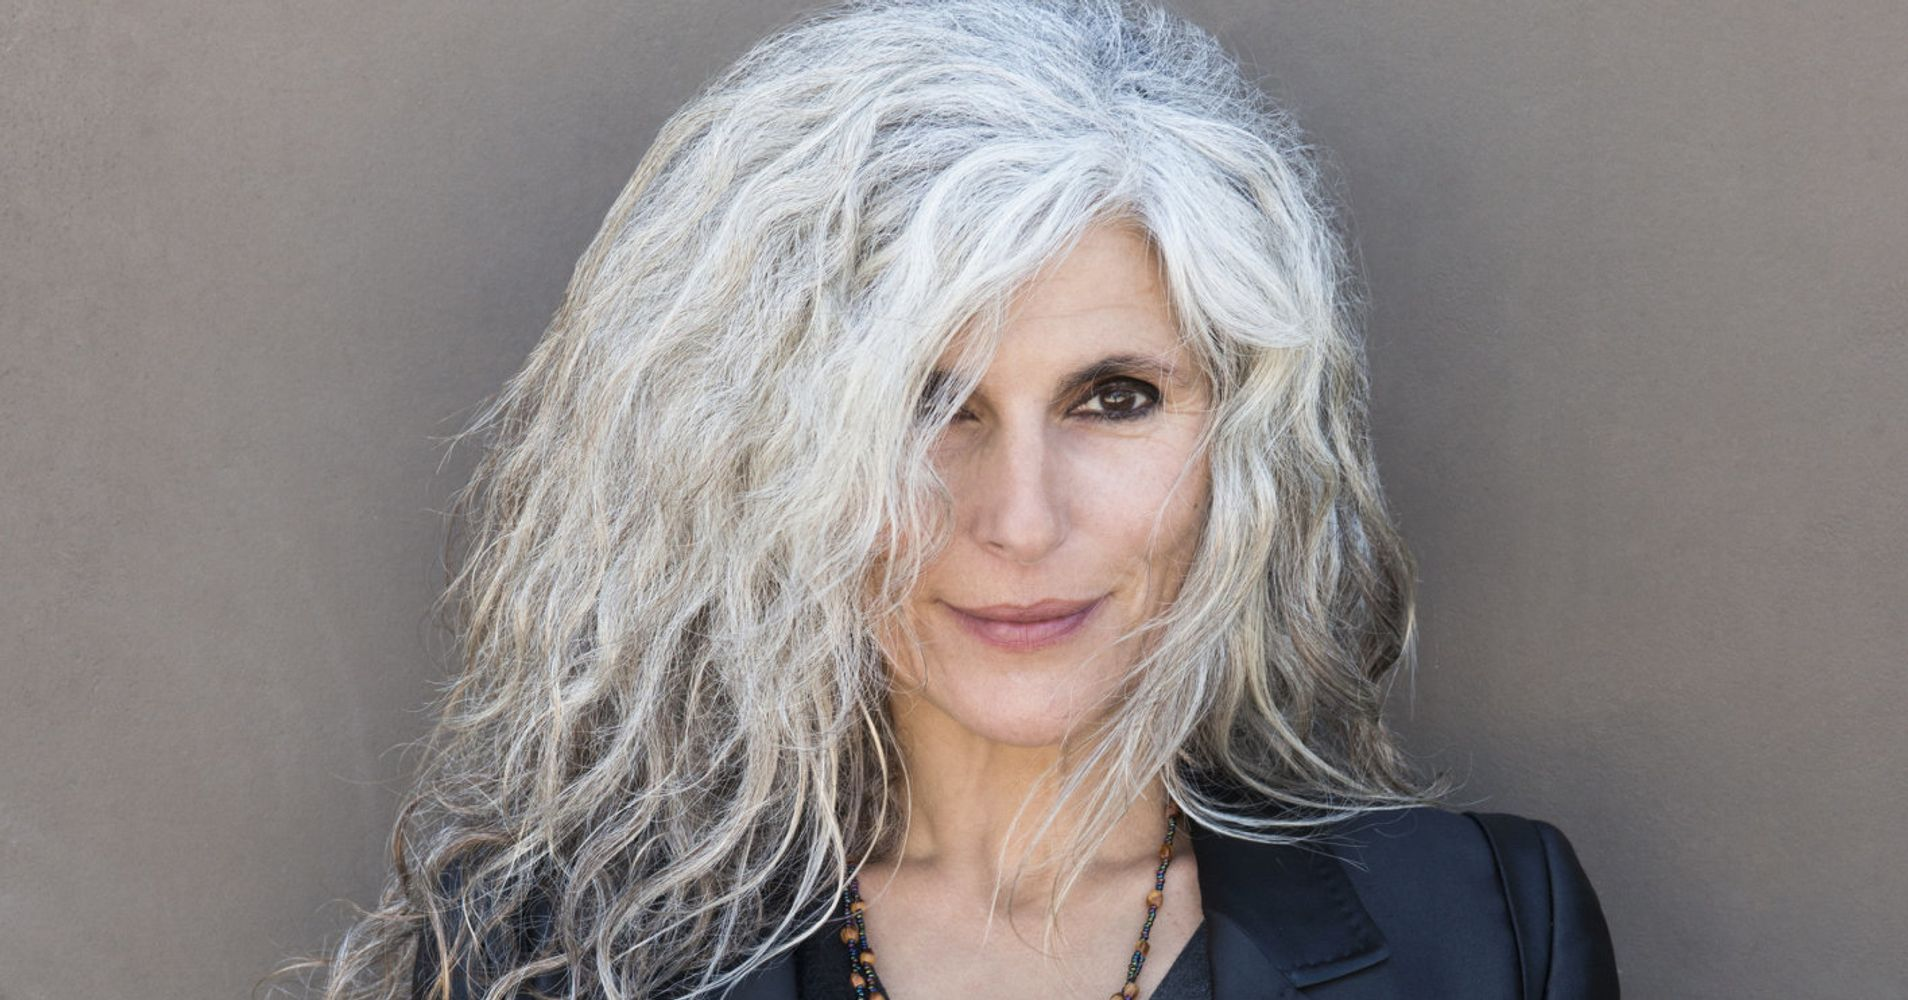 Styles For Grey Hair: 17 Hairstyles That Prove Going Gray (And White) Is